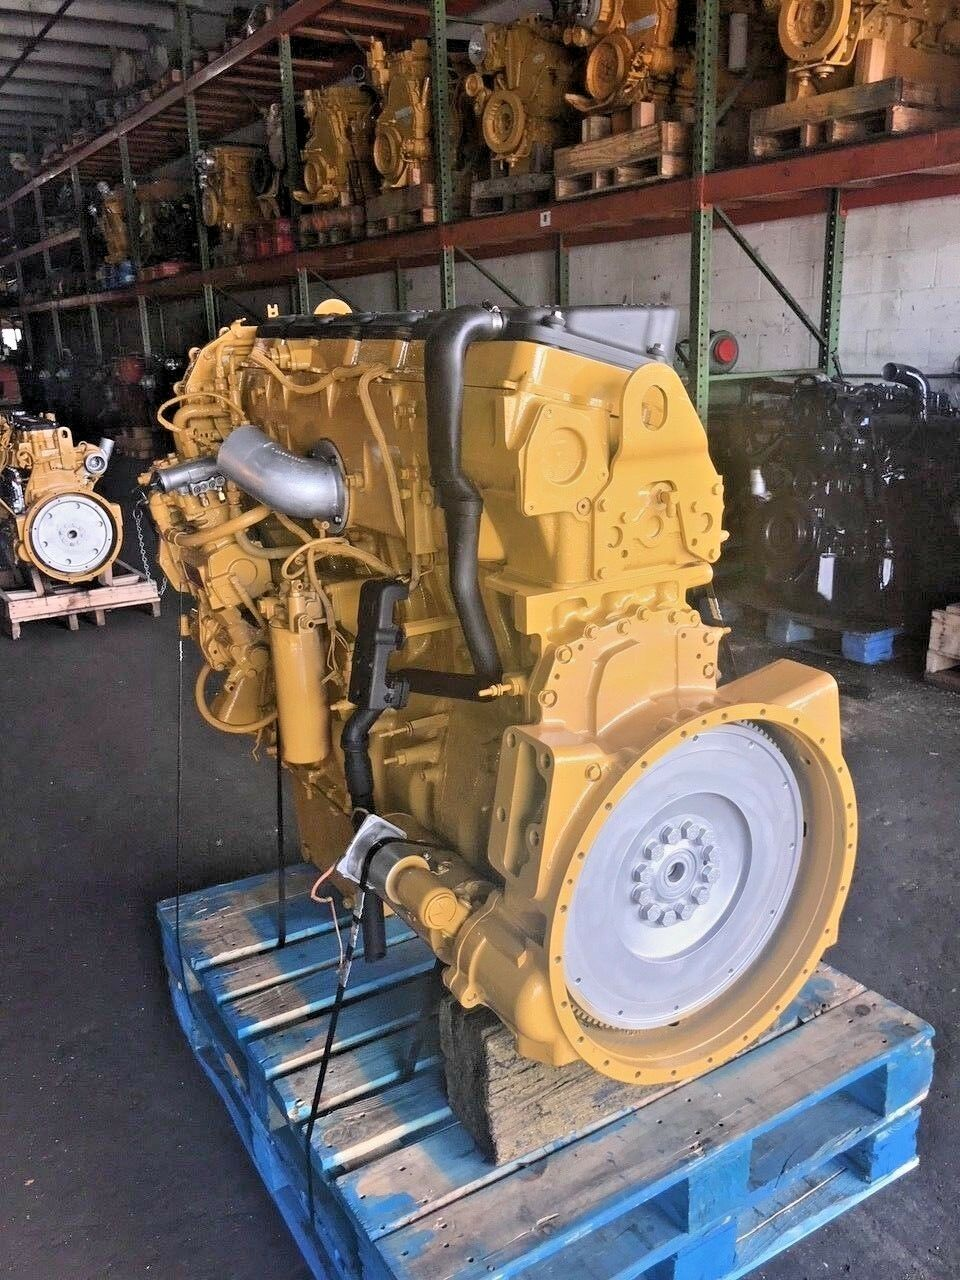 2001 Caterpillar C15 Diesel Engine Logbookloanstoday 6nz Wiring Diagram 1 Of 5only Available